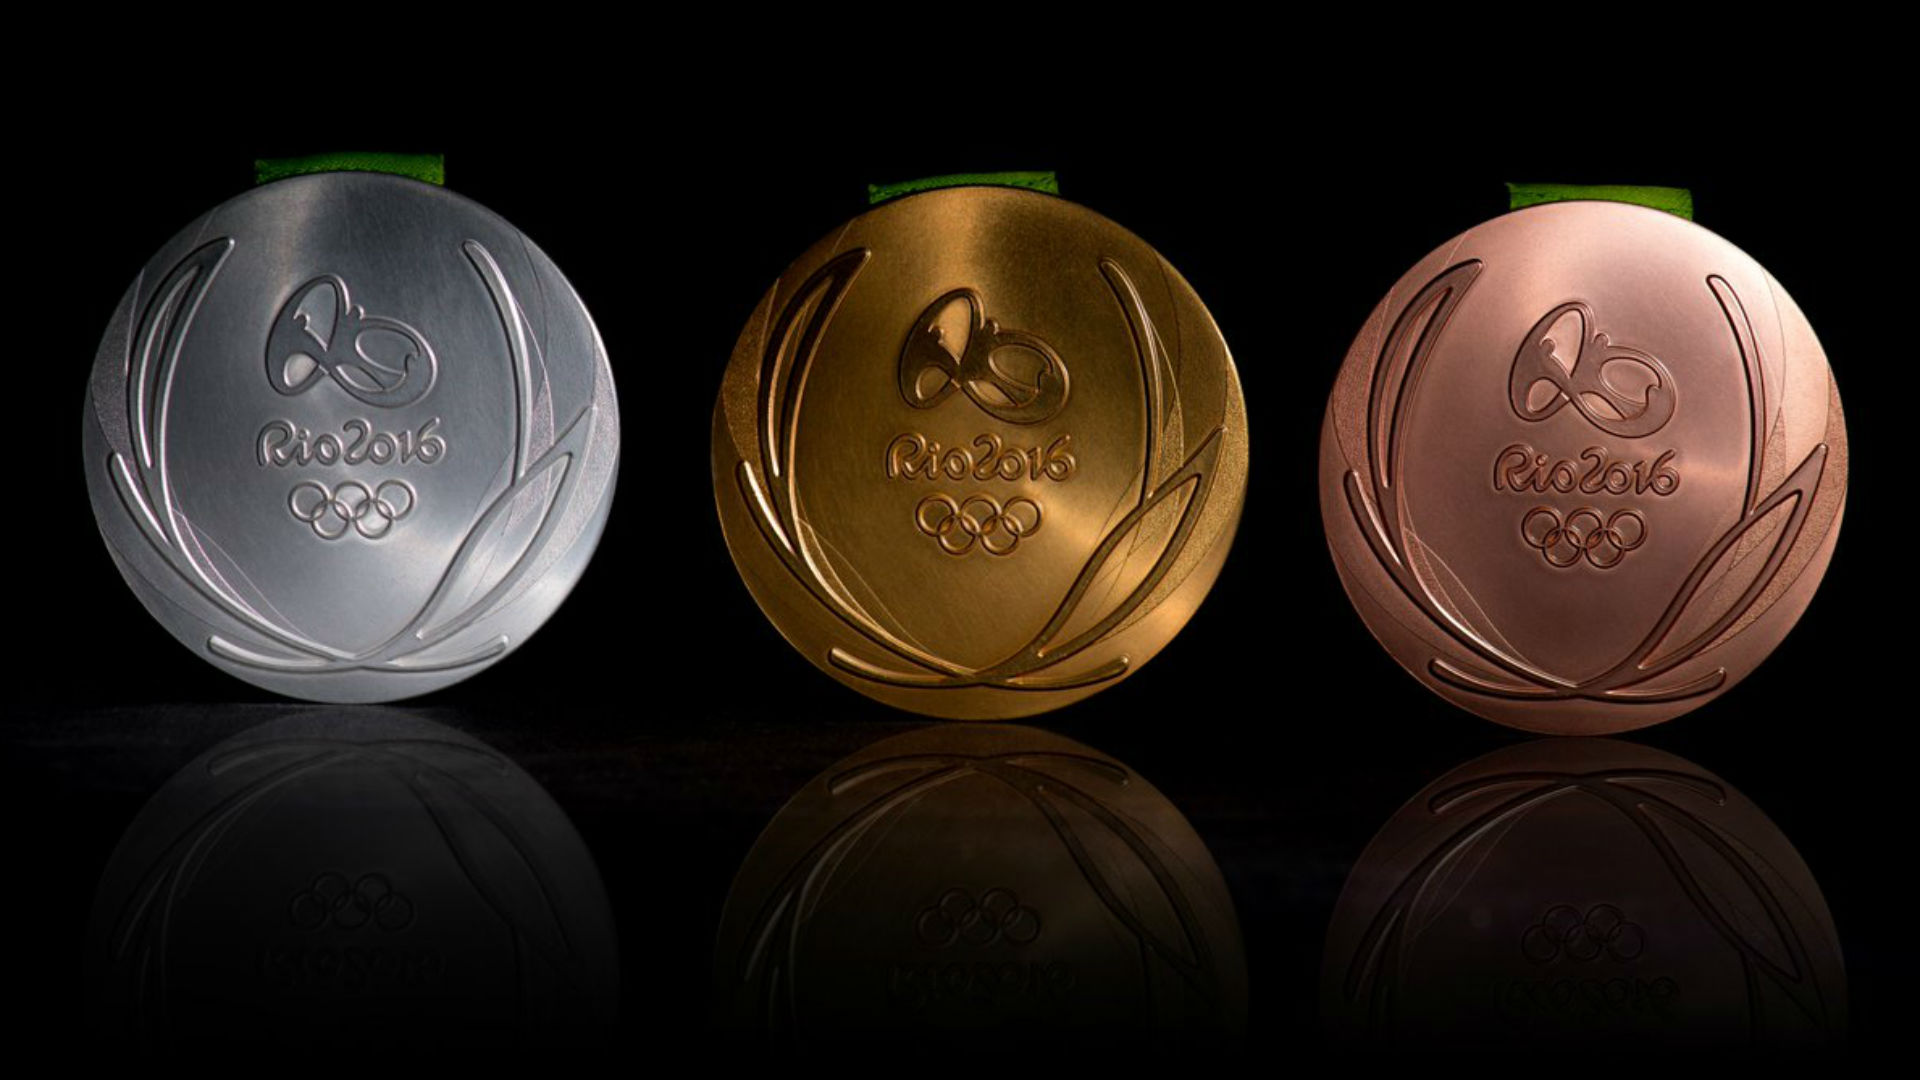 Olympic Medals 2016